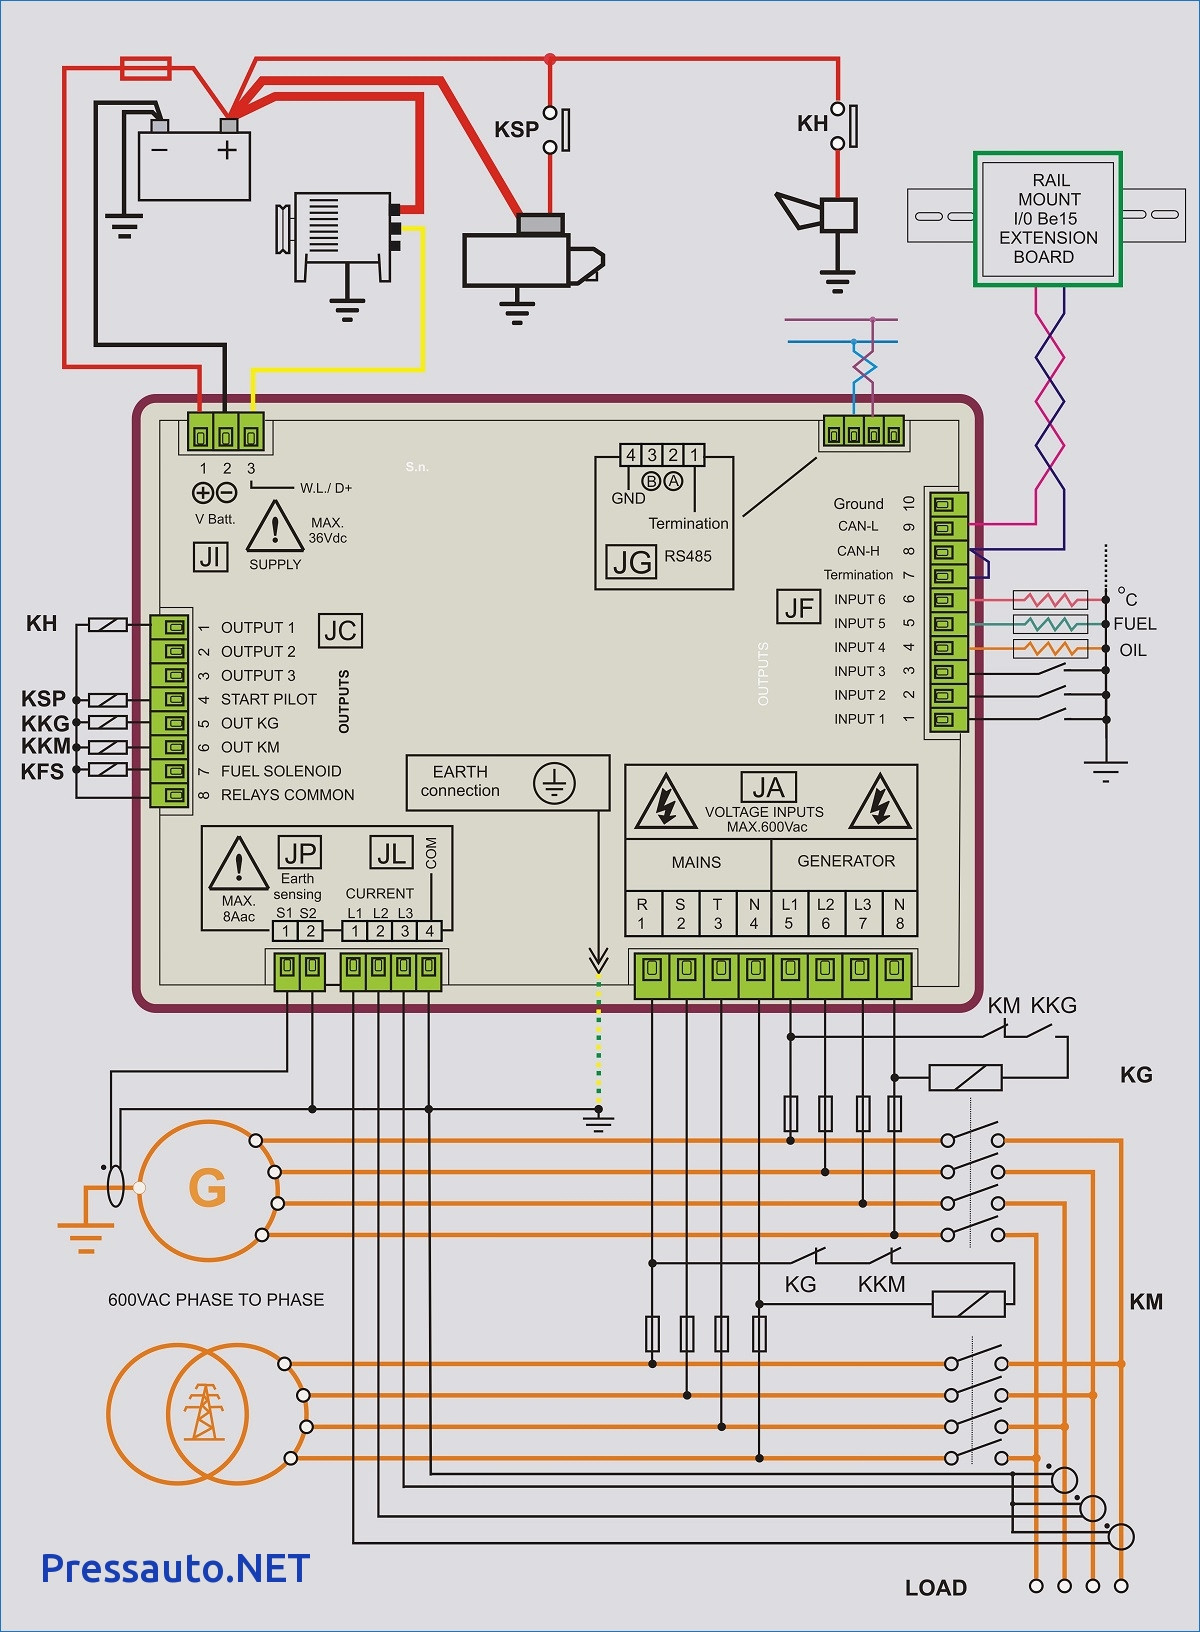 generac manual transfer switch wiring diagram Download-Wiring Diagram Standby Generator New Portable Generator Transfer Switch Wiring Diagram for Manual Generac 1-h